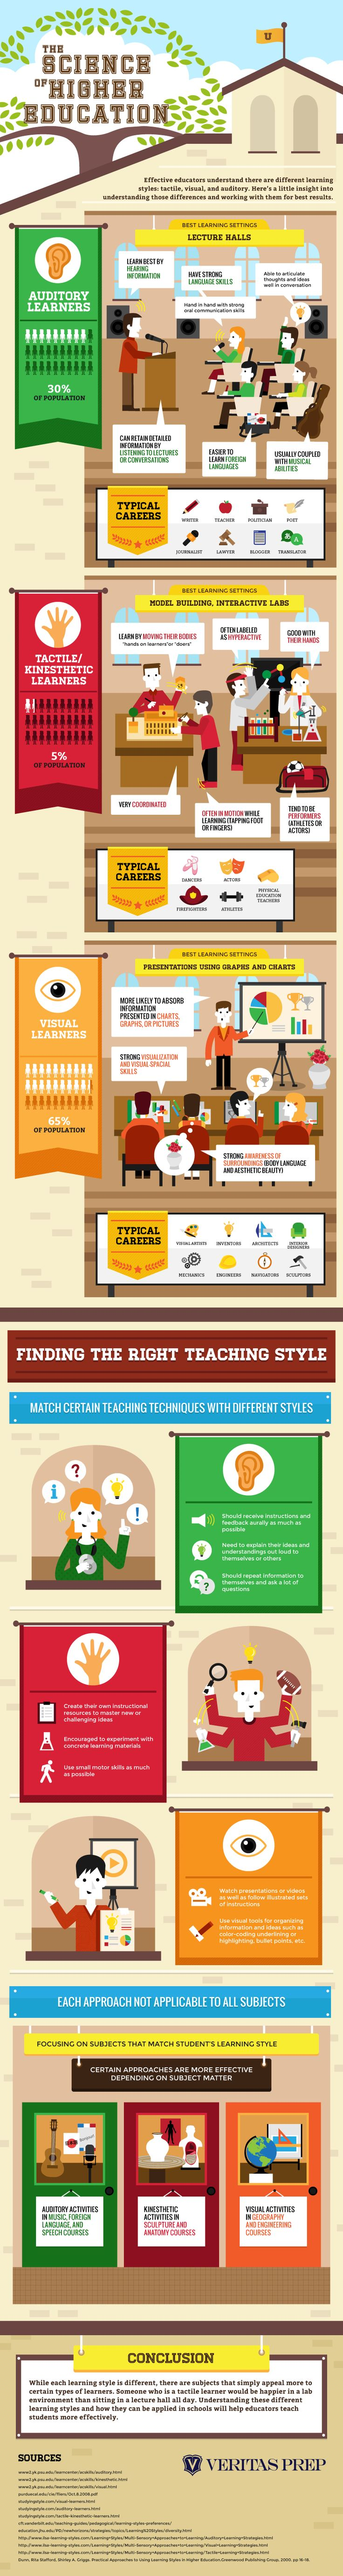 Learning styles and career types that work well for each...